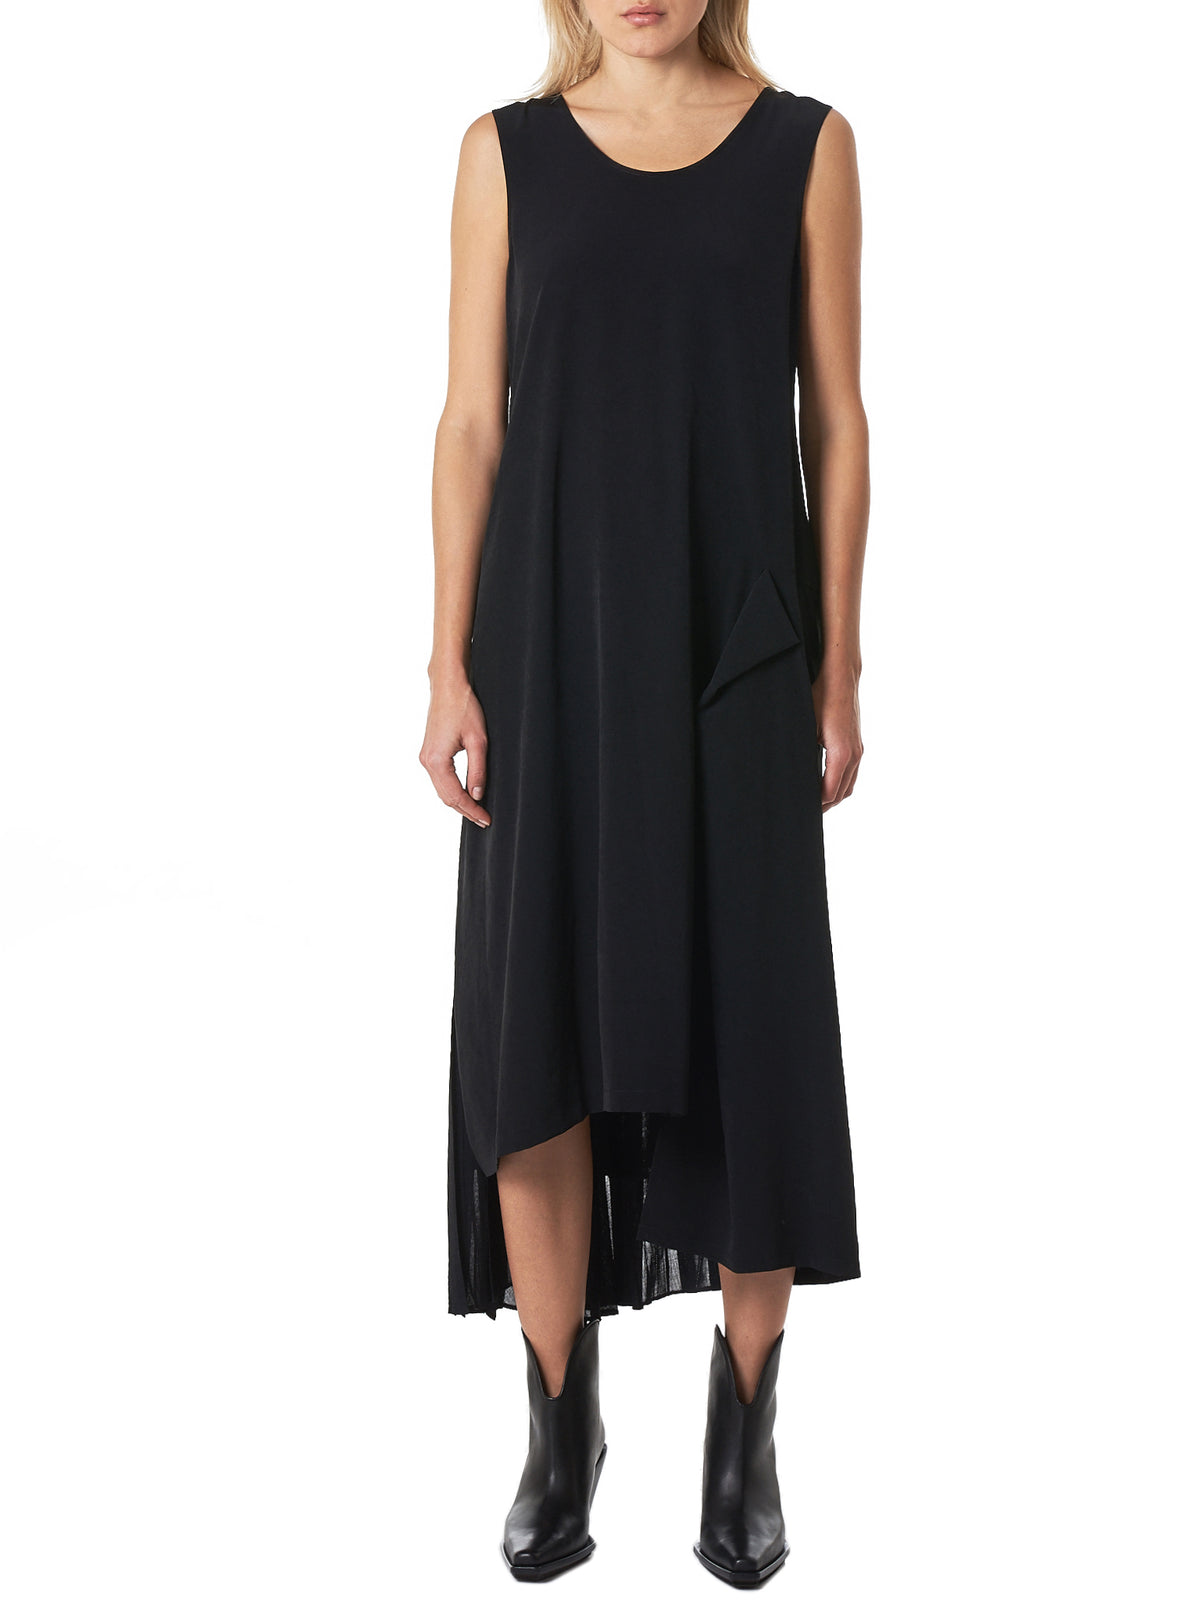 Split-Skirt Dress (YZ-D06-500-BLACK)